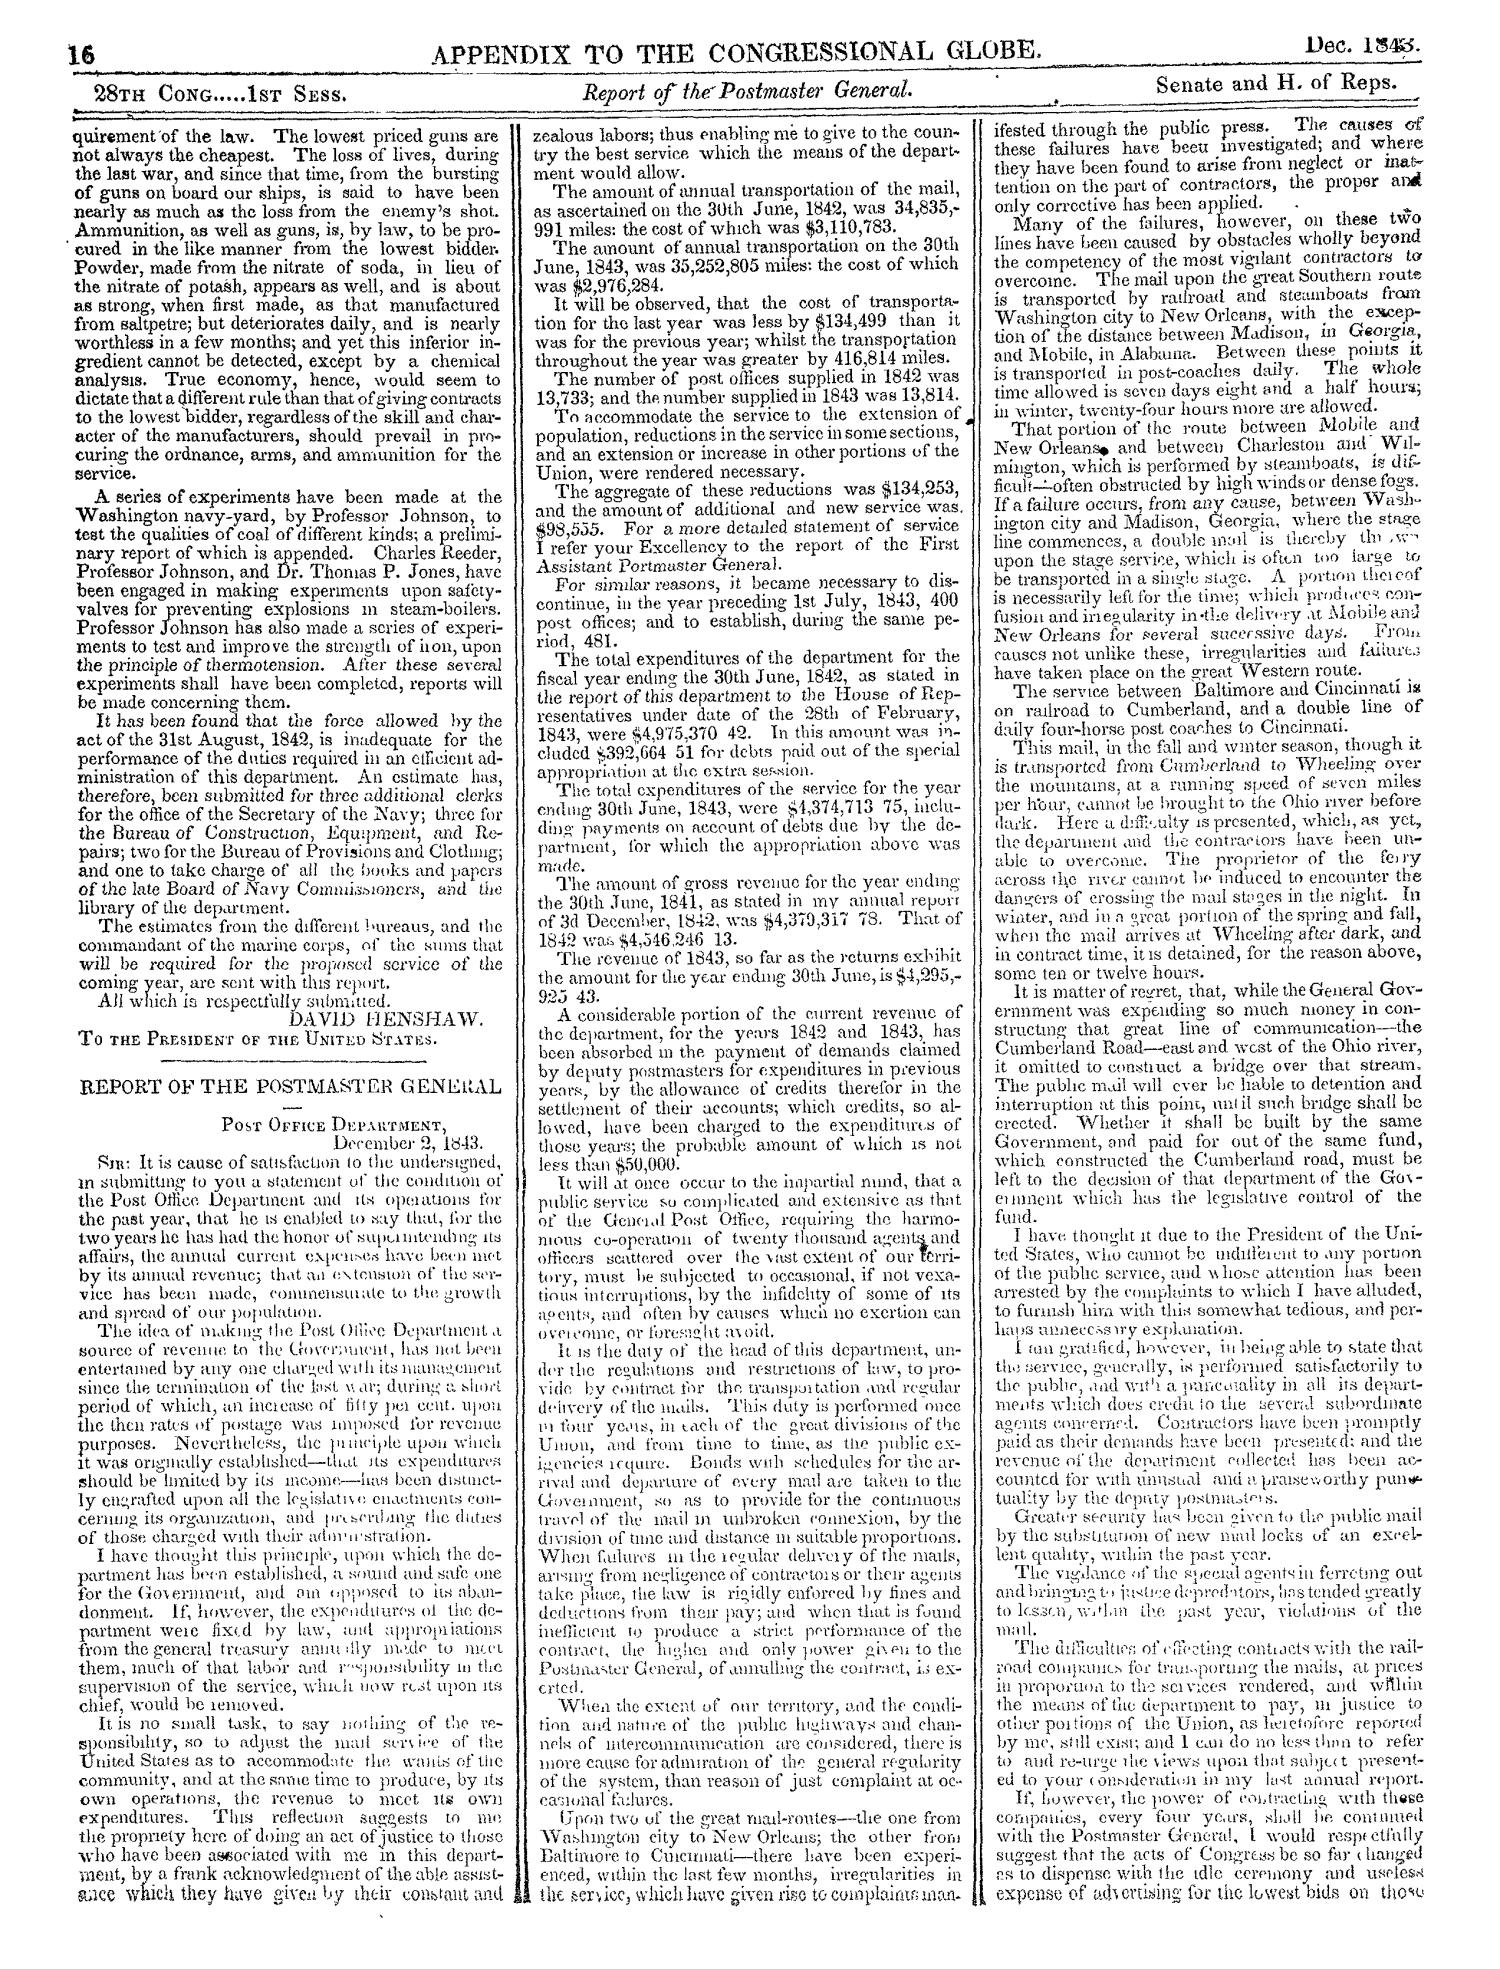 The Congressional Globe, Volume 13, Part 2: Twenty-Eighth Congress, First Session                                                                                                      16